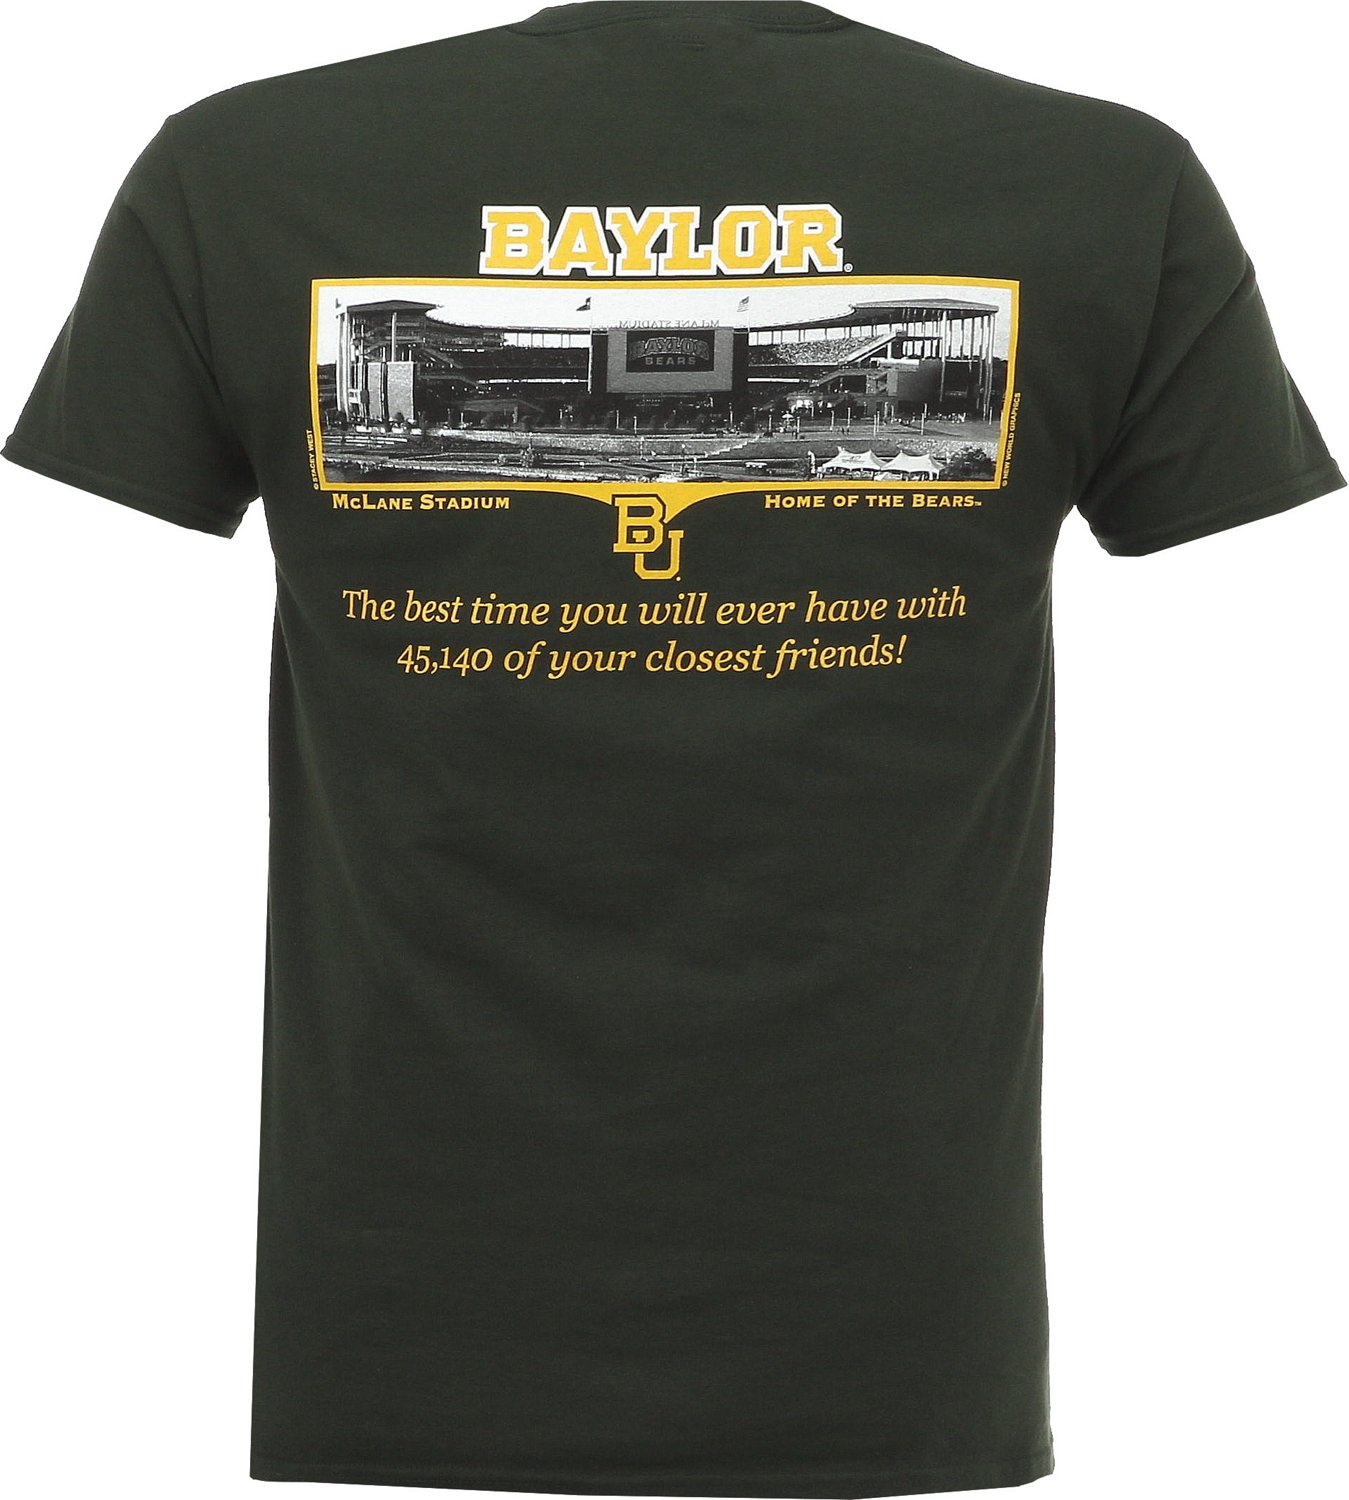 New World Graphics Men's Baylor University Friends Stadium T-shirt